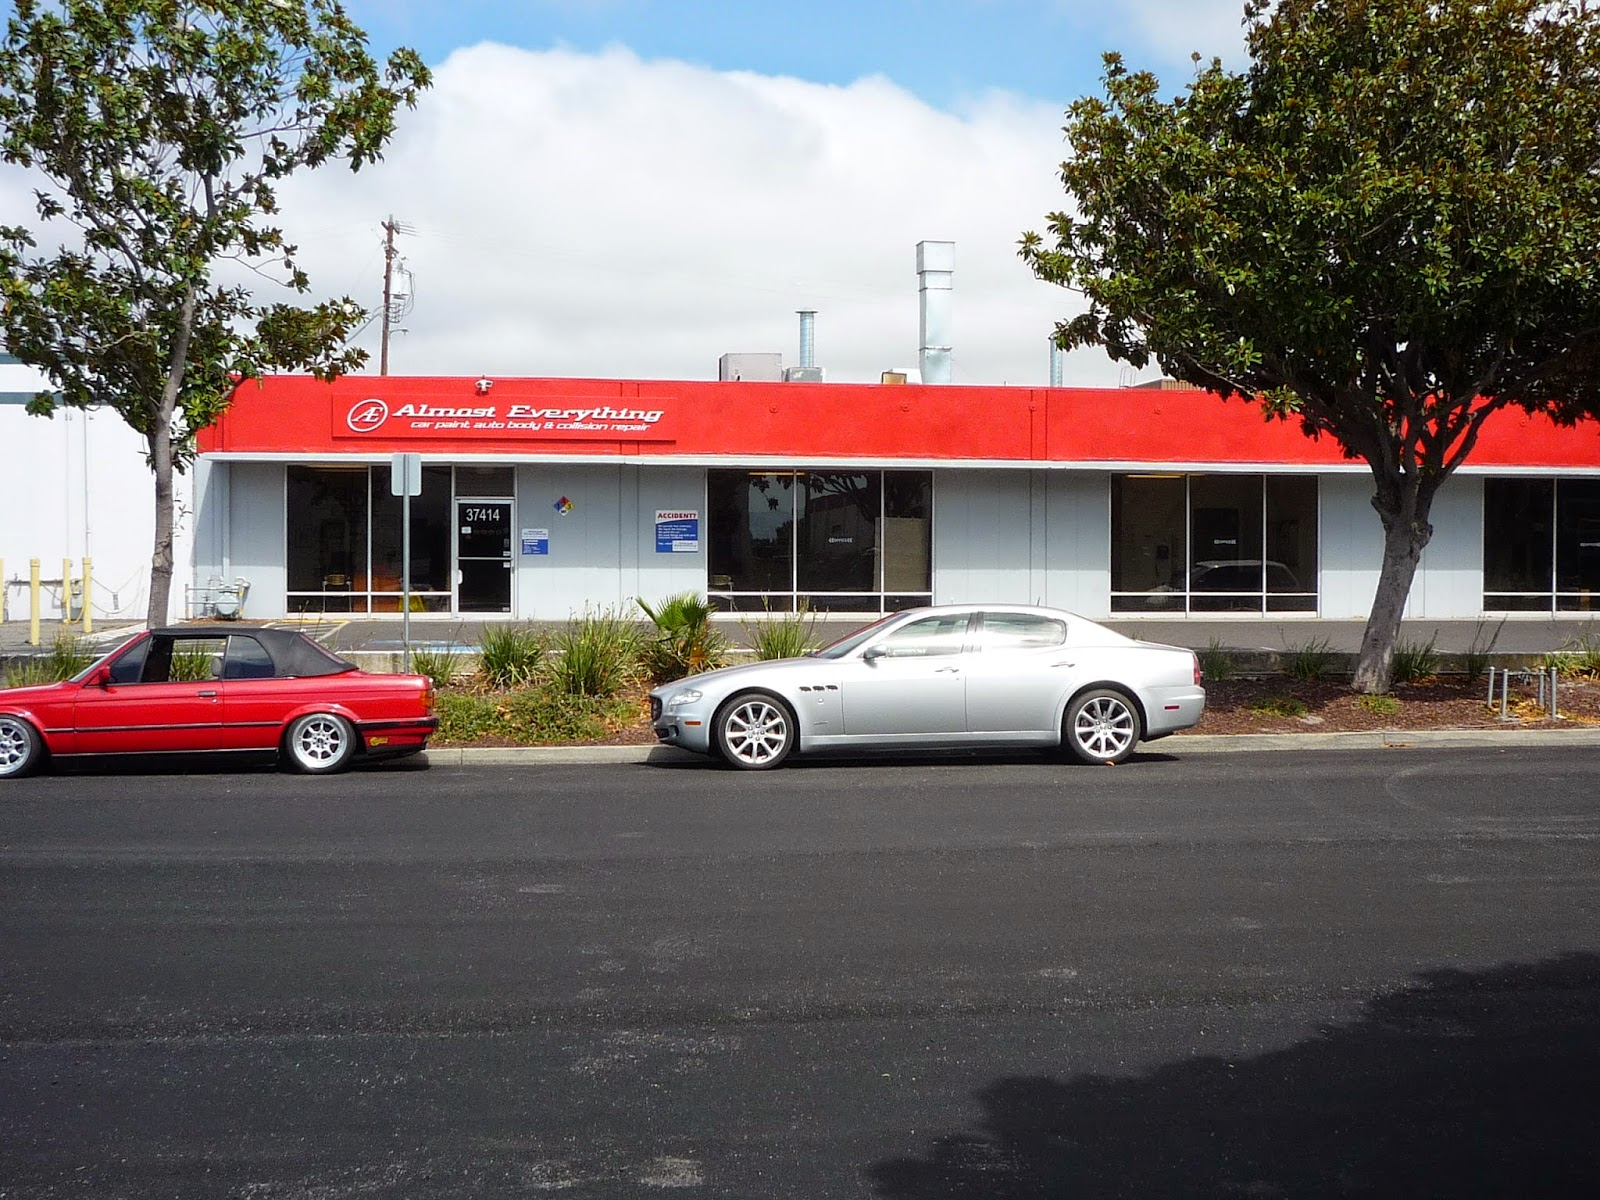 Almost Everything Auto Body Repair & Paint, the premier collision repair center in the Bay Area